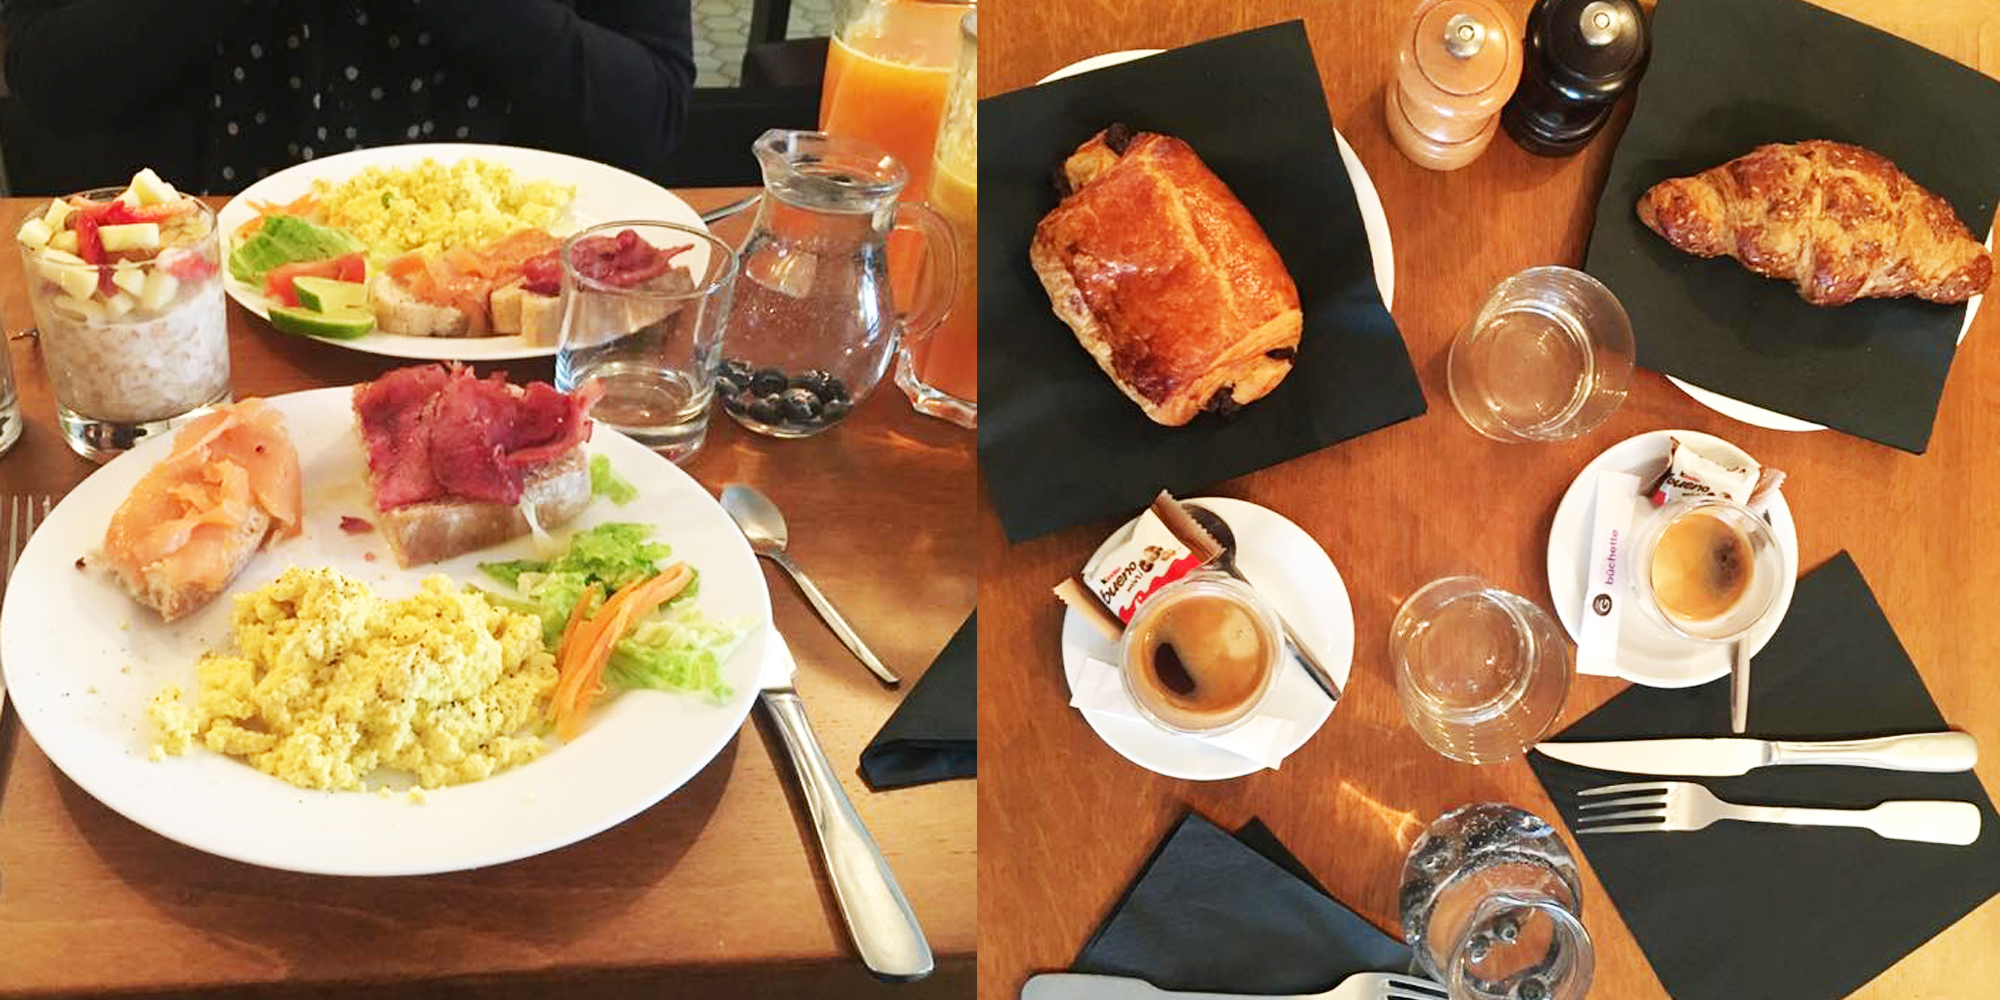 Brunch Kaitleen (75001 Paris 1er)